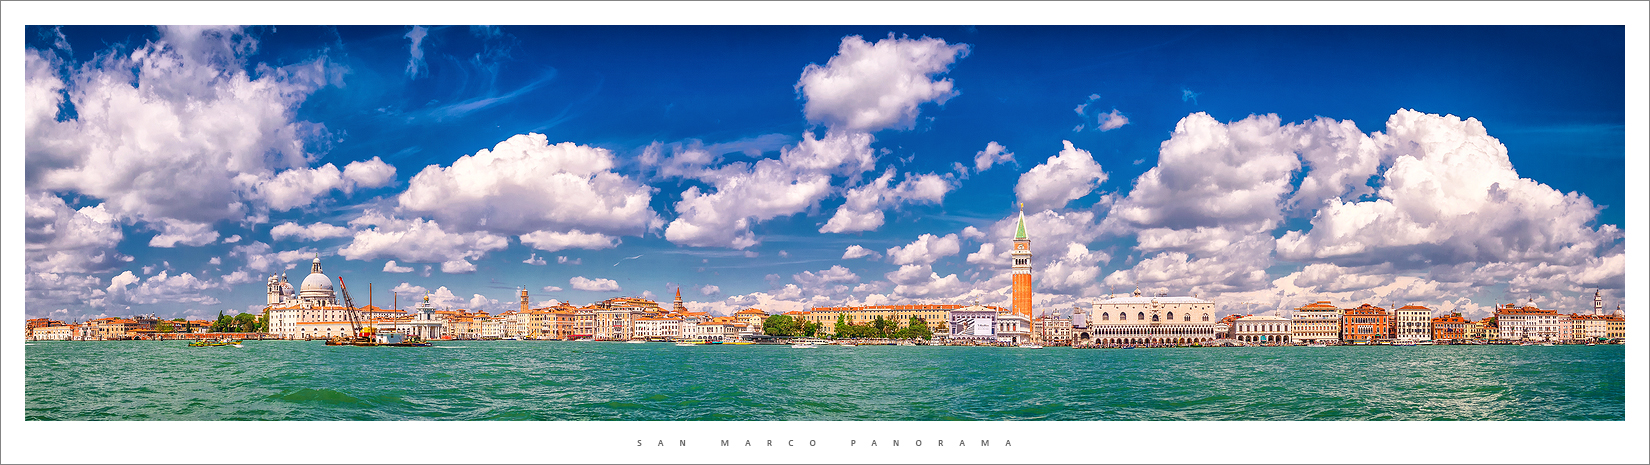 San Marco Panorama by Nylons